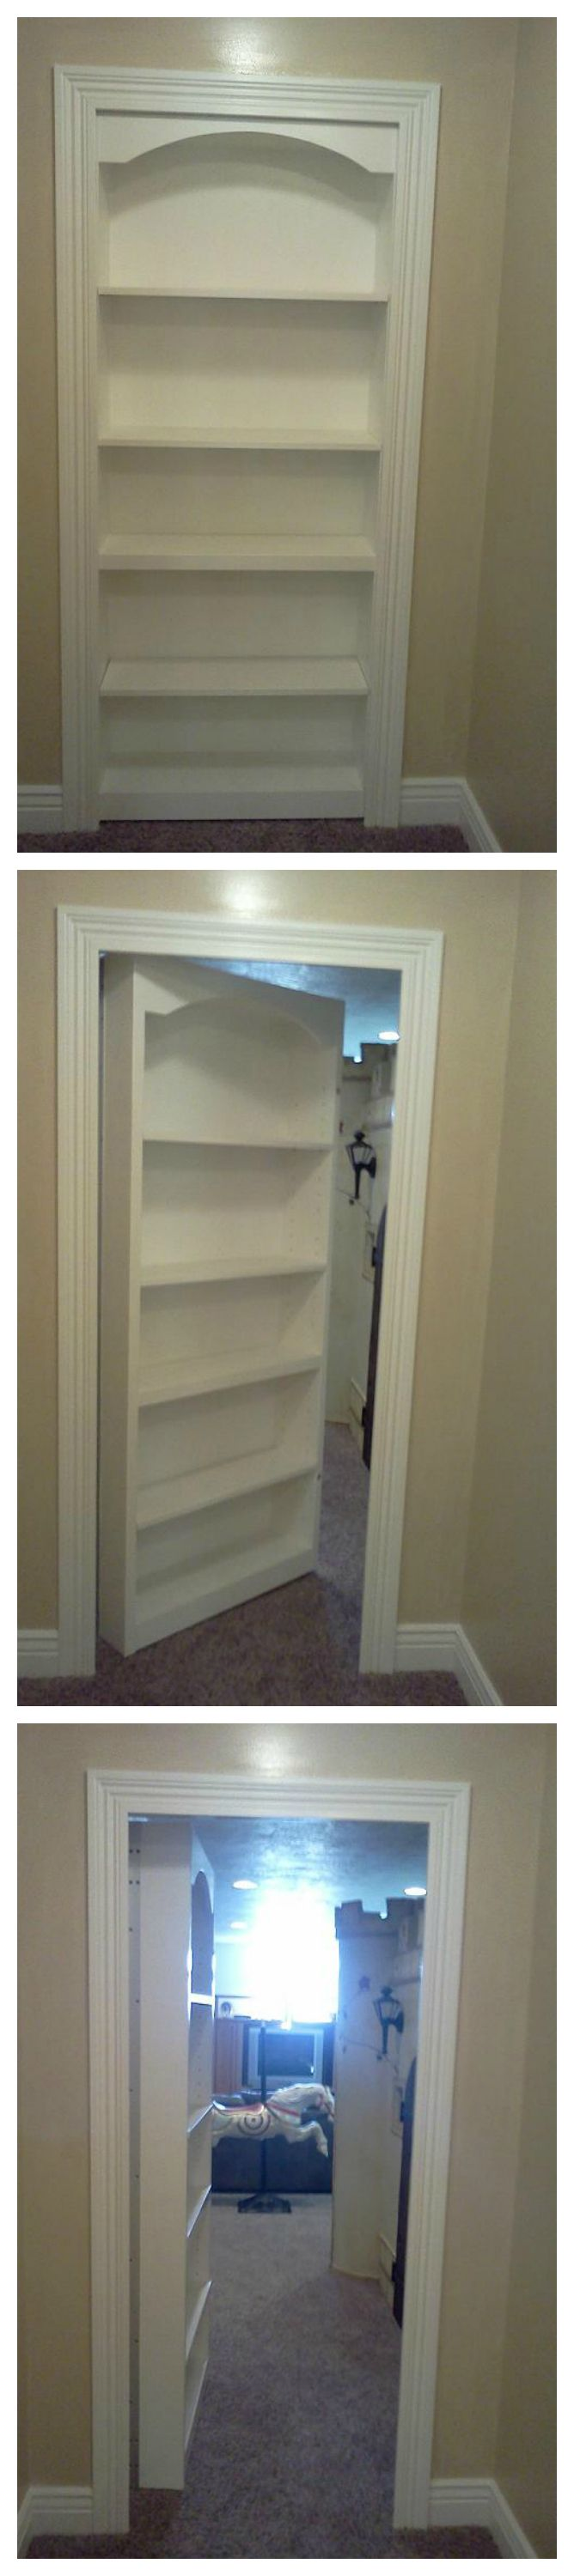 1000 ideas about closet remodel on pinterest bathroom for Bathroom remodeling leads